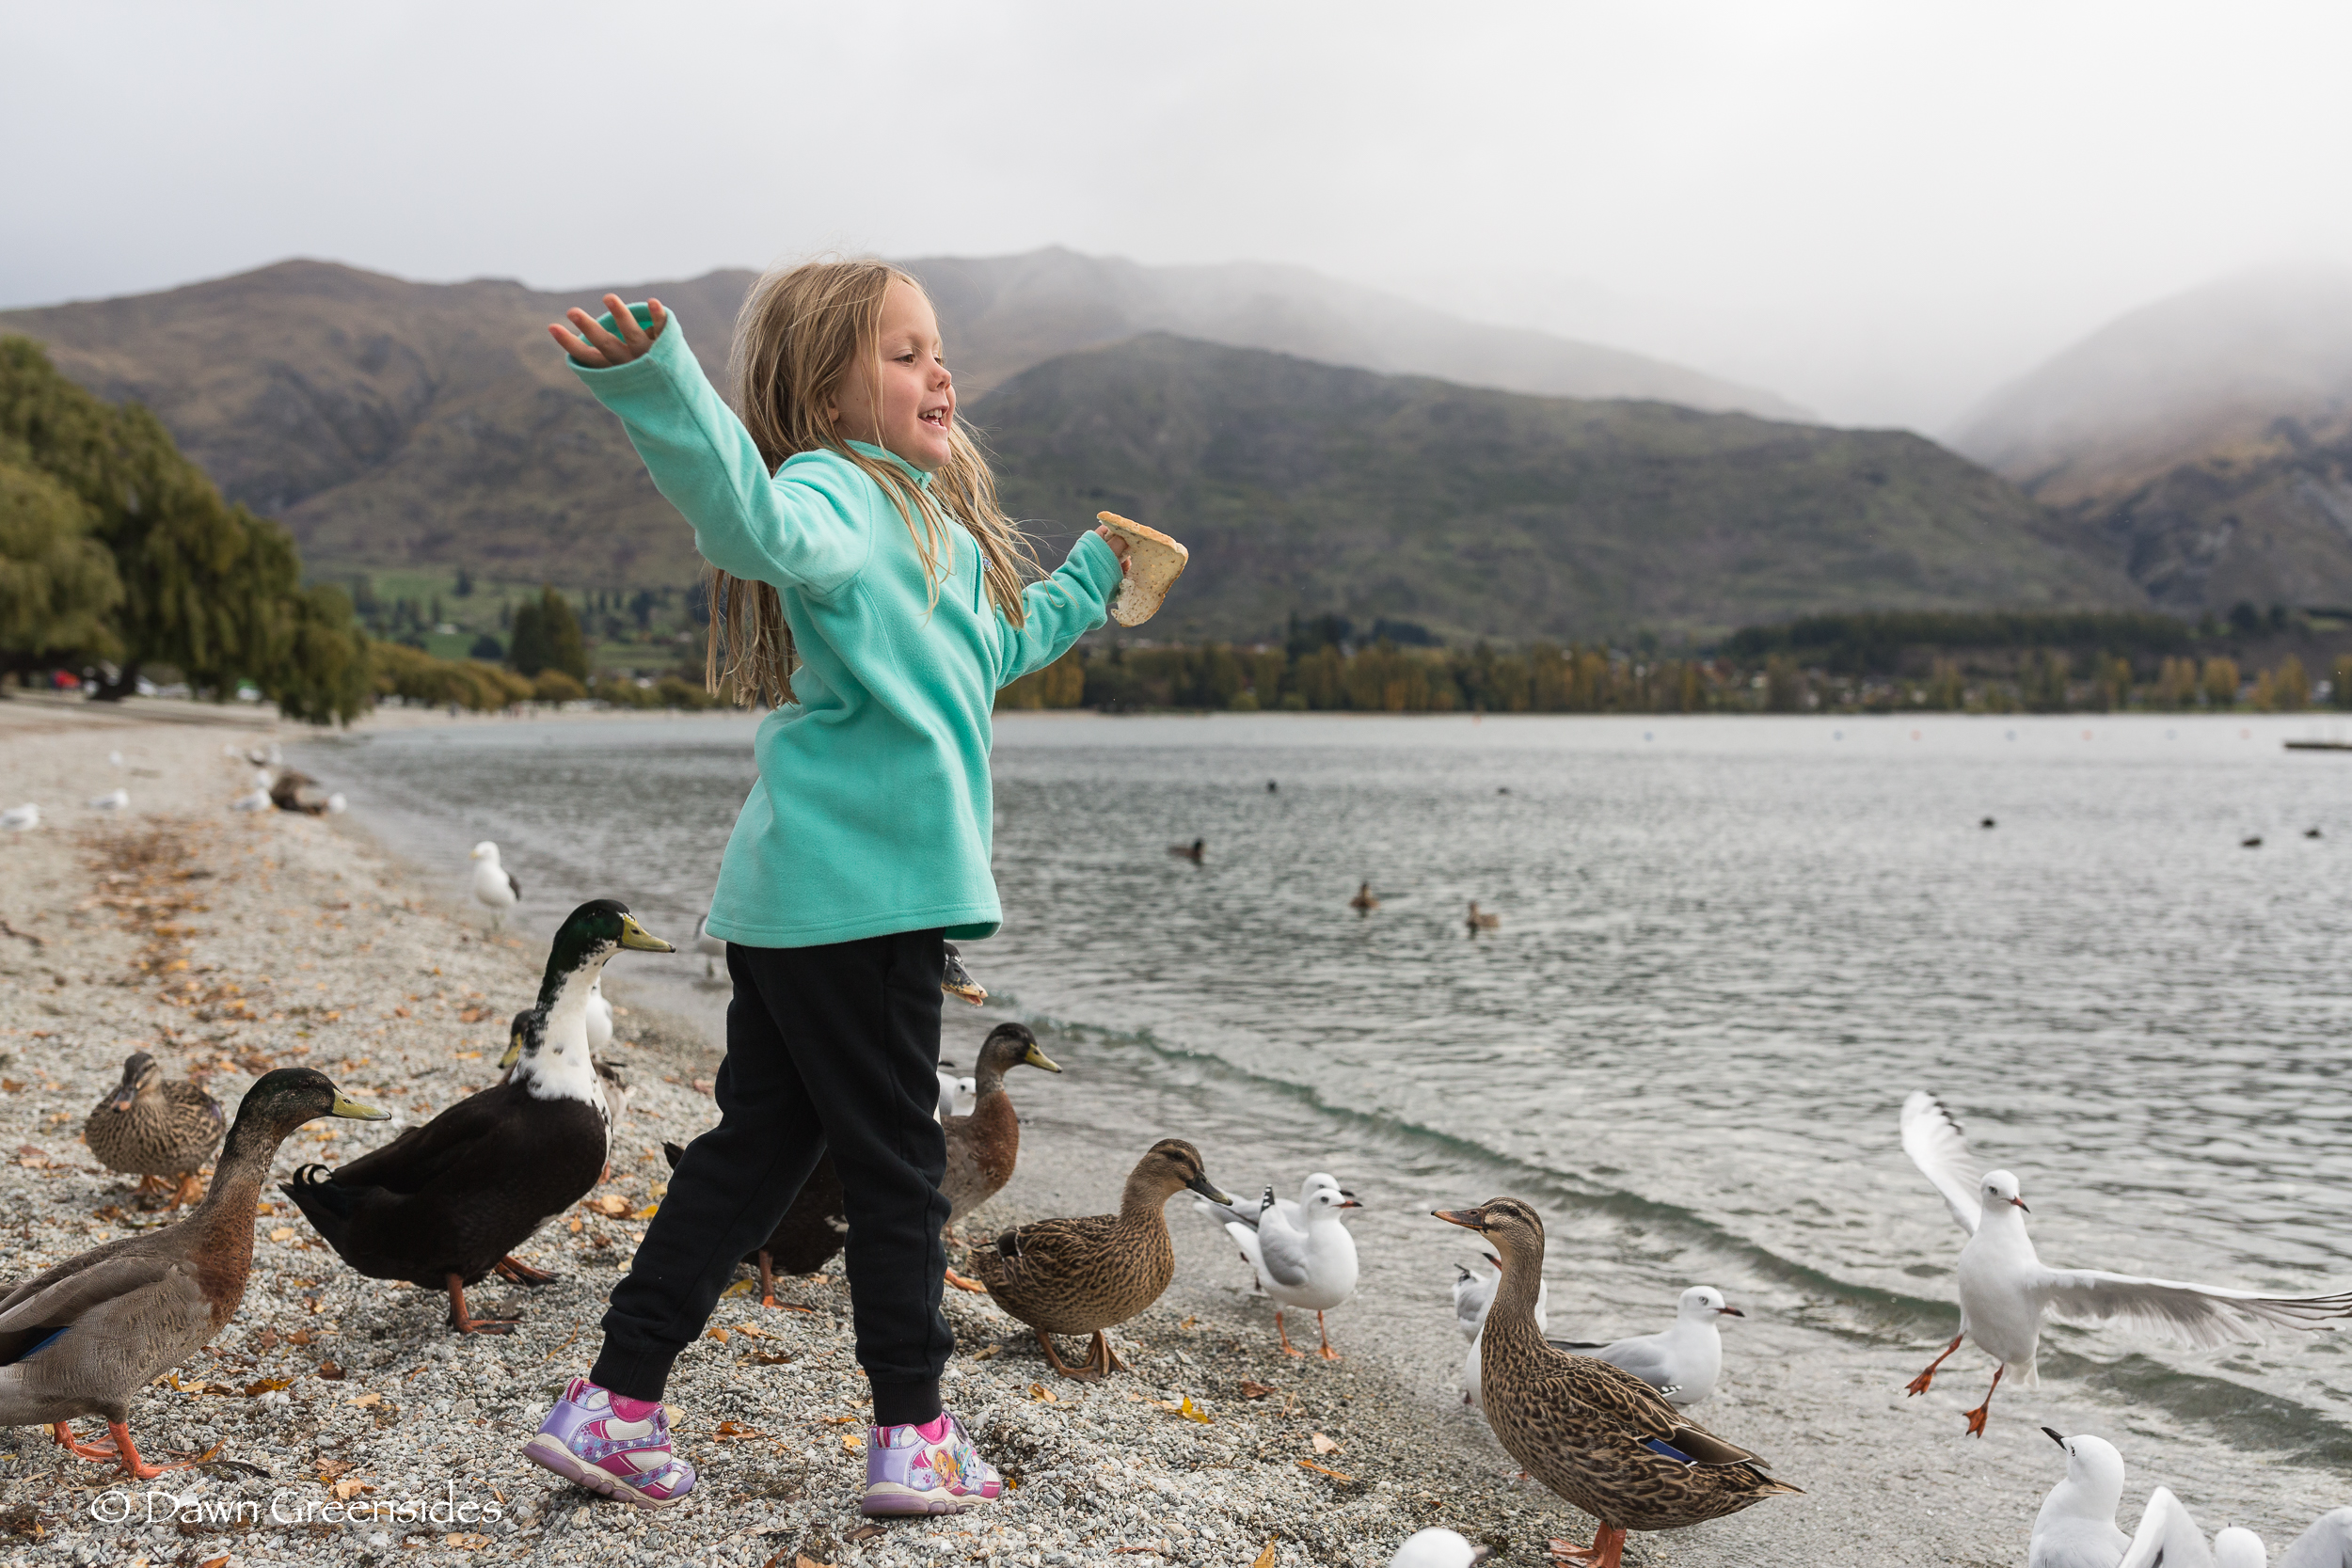 I hope this kid continues to smile and feed the ducks and seagulls  everywhere  she goes! This picture is a true example of Piper's personality! I love it!!!